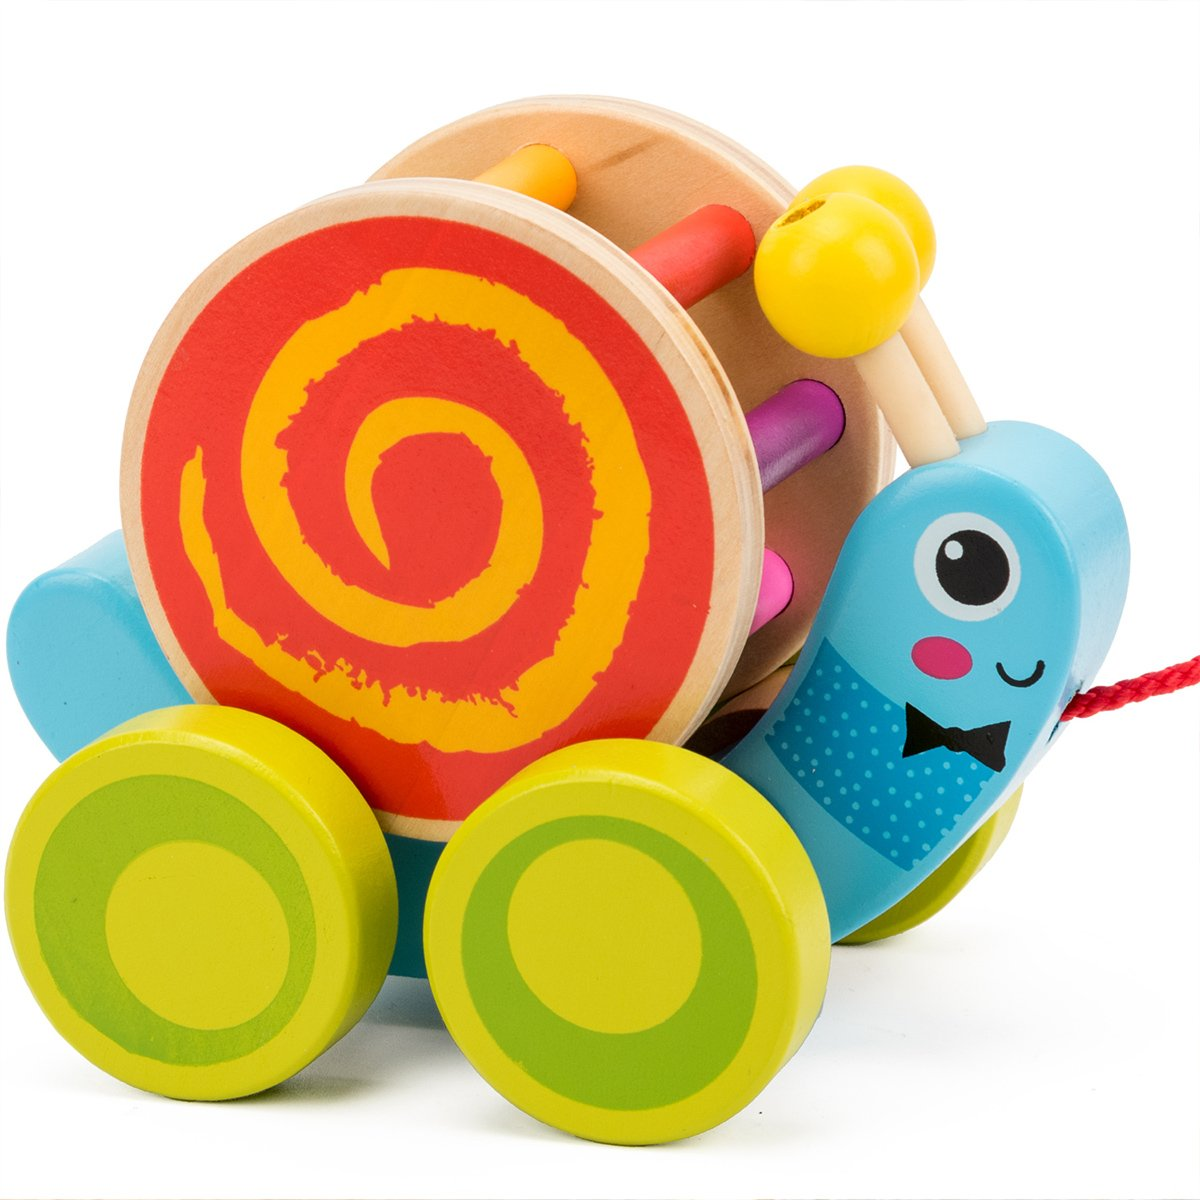 cossy Wooden Pull Toys 1 Year Old, Snail Push Toy Toddler Children Kids